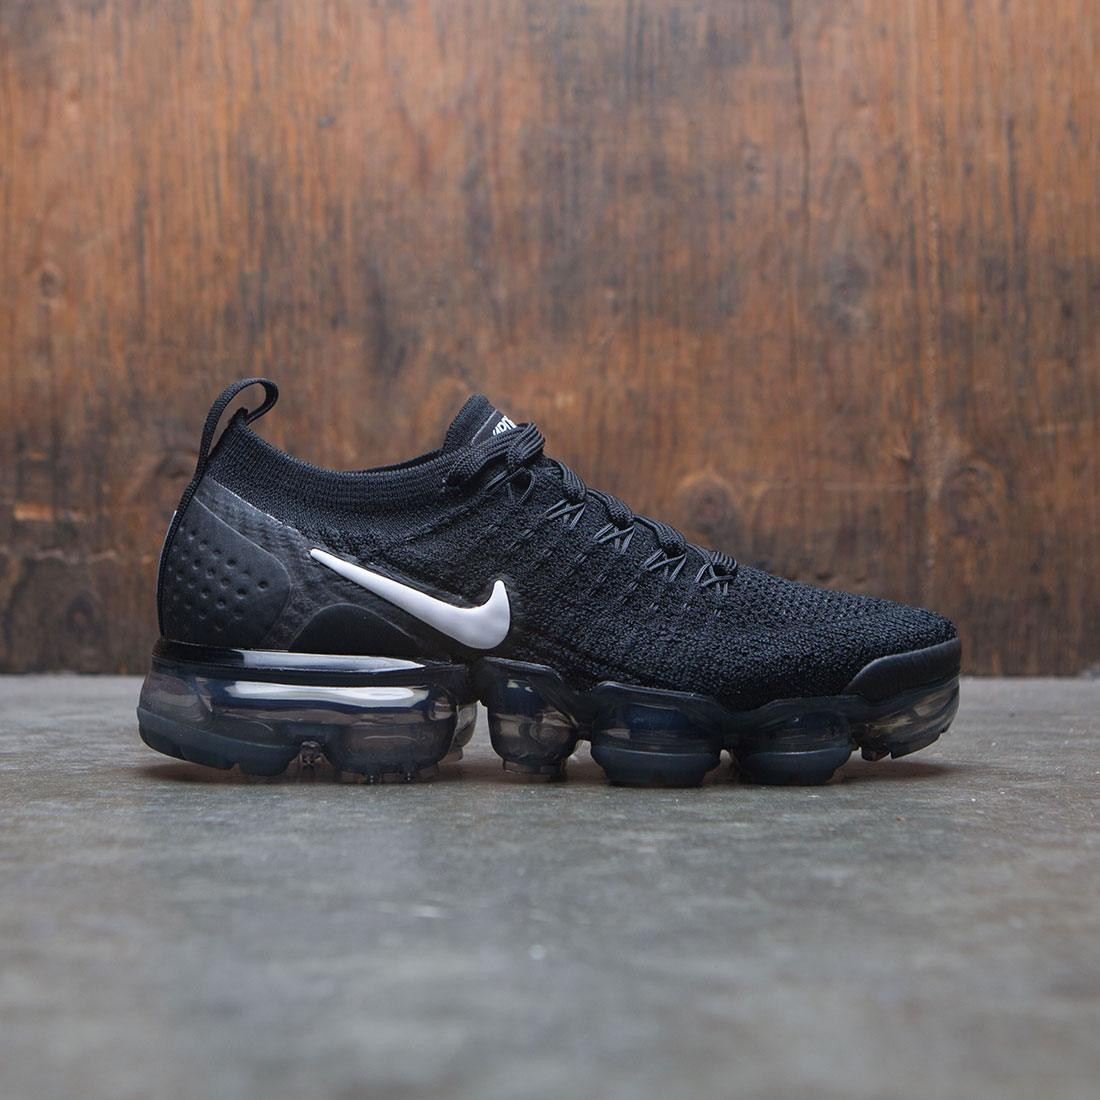 new concept 37d1a 3b3ef Nike Women Air Vapormax Flyknit 2 (black / white-dark grey-metallic silver)